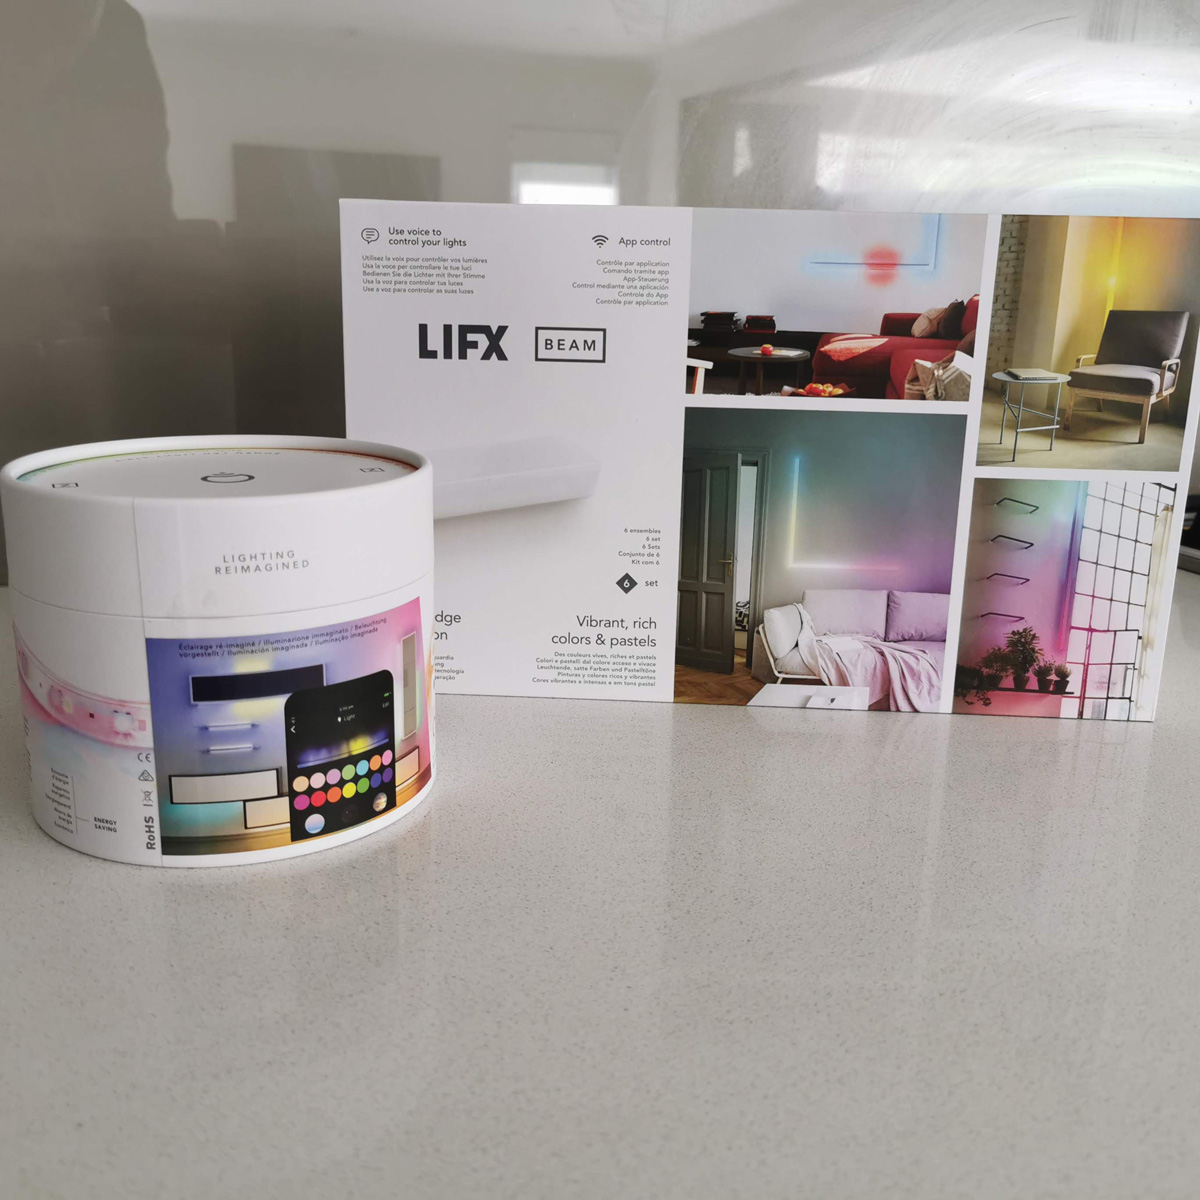 Review: Smart Home illumination with LIFX Z and LIFX